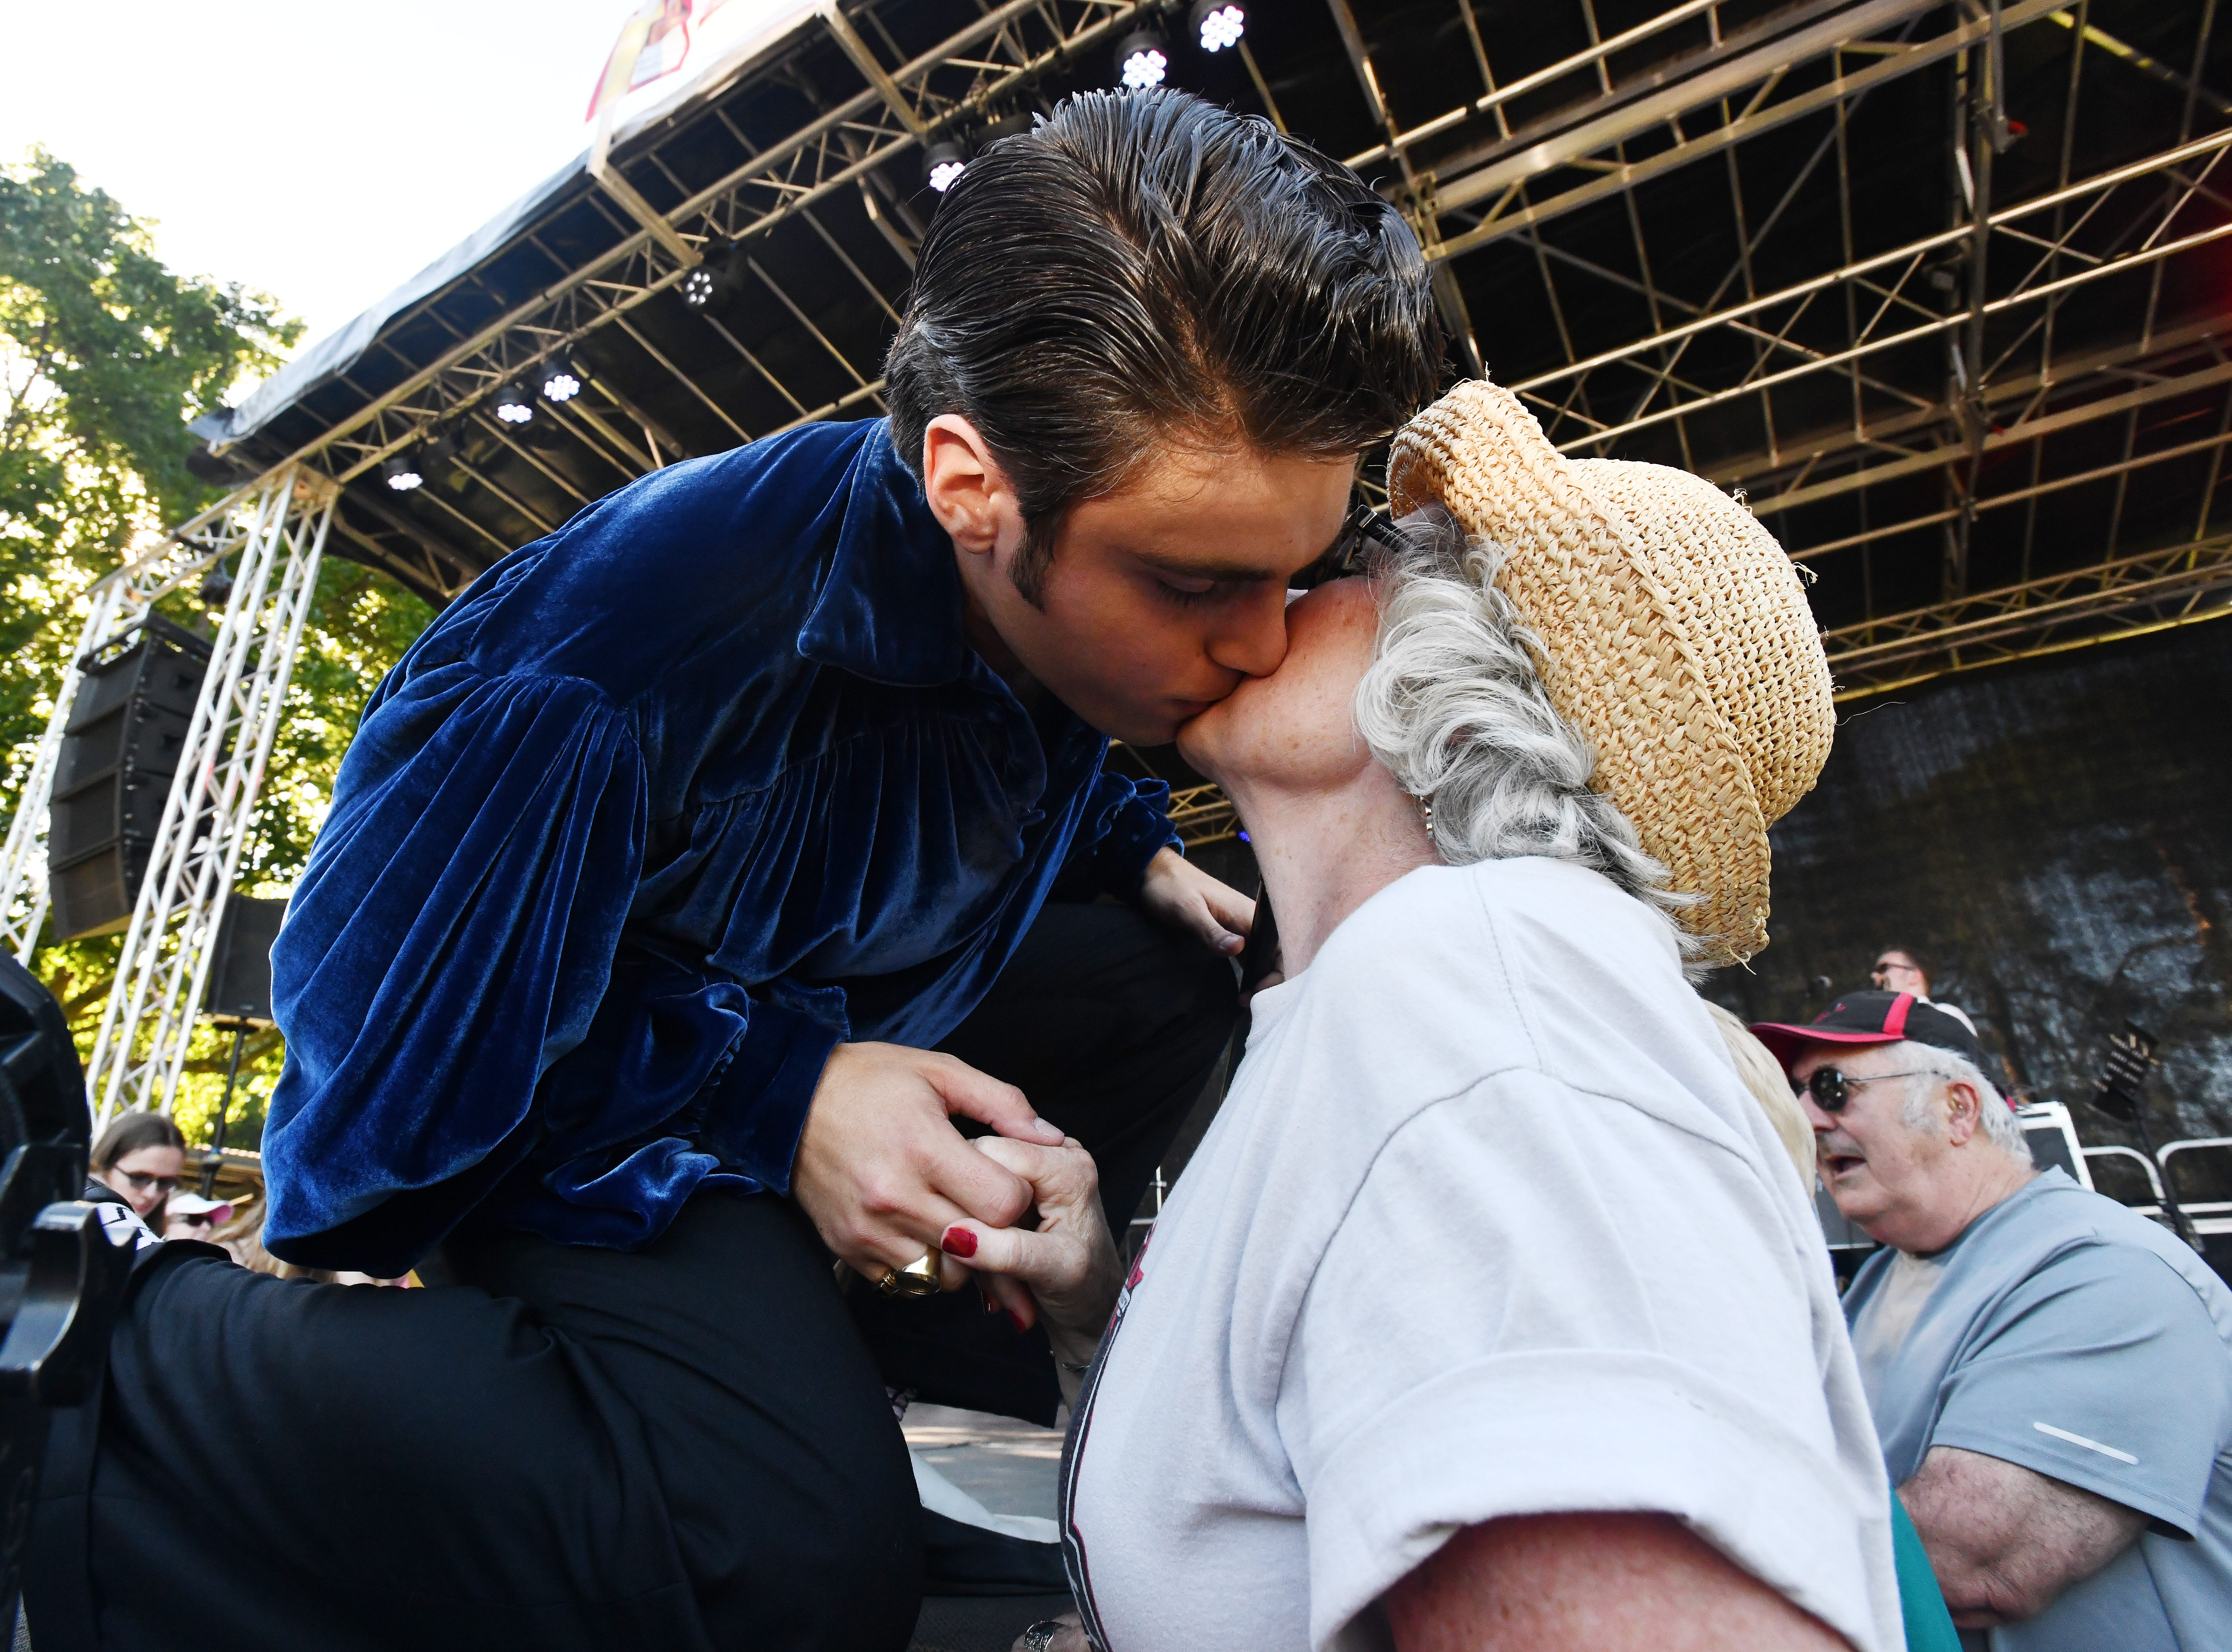 Elvis impersonator Jake Slater gives out a few kisses, including this one to Donna Brigman, during his set at the Michigan Elvisfest at Depot Town in Ypsilanti on July 6, 2018.